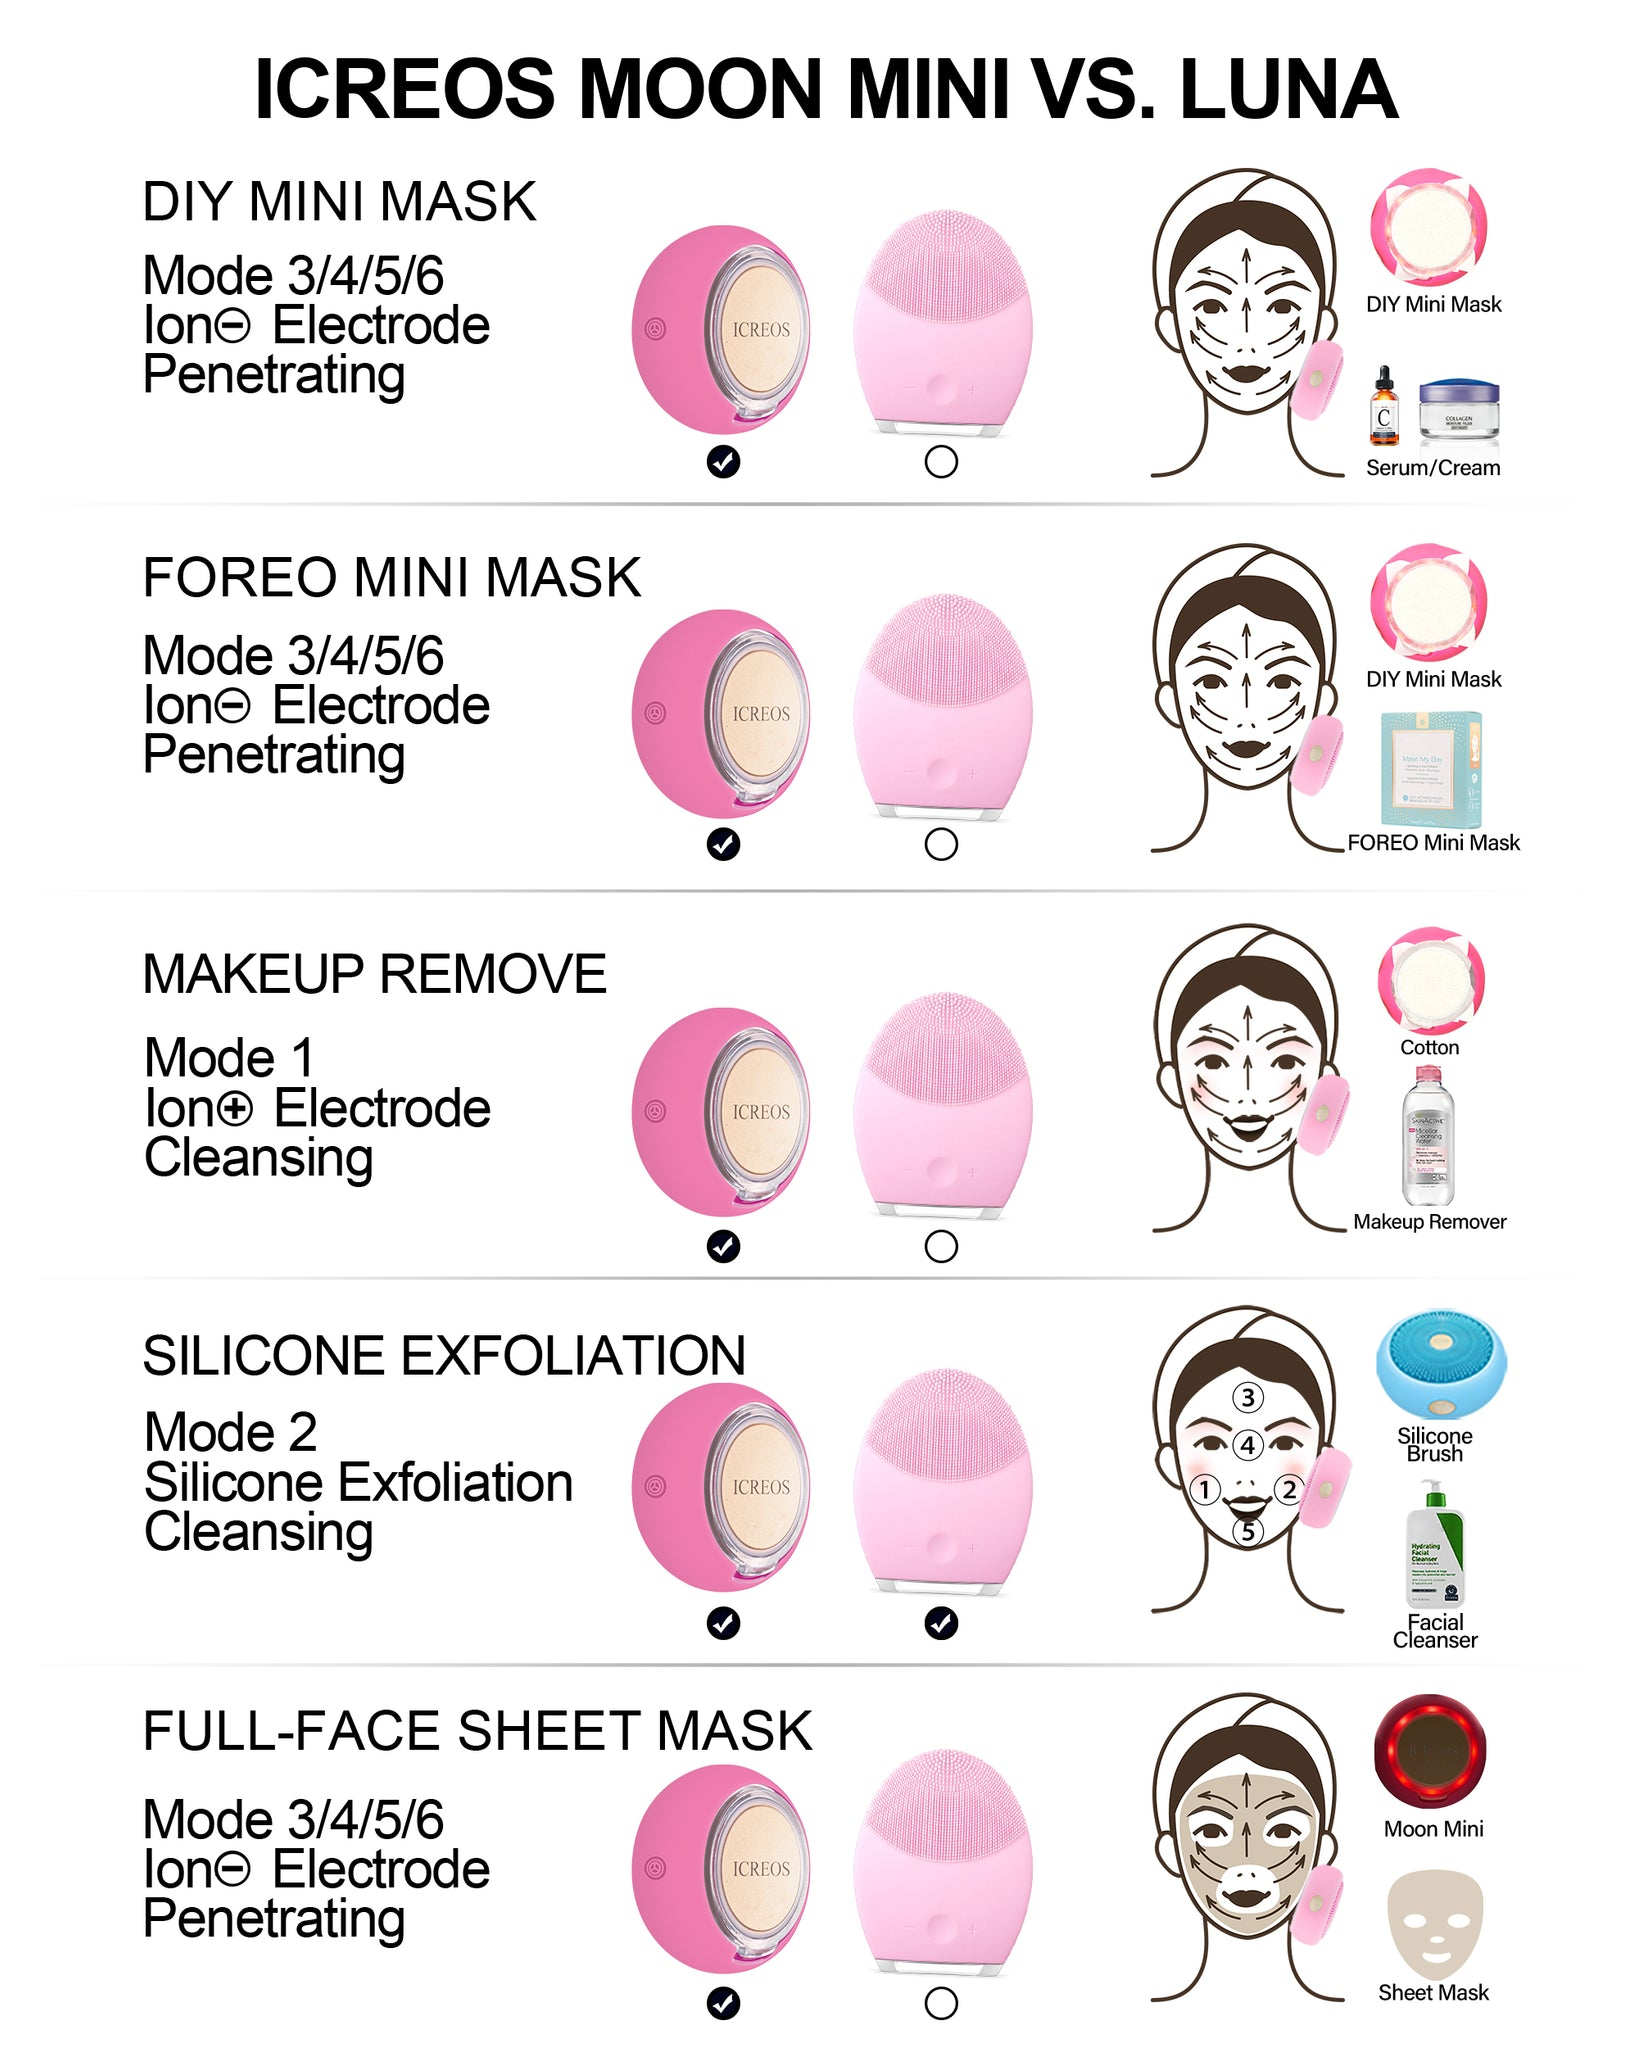 iCreos_Moon_Mini-Usage-VS-Foreo_Luna-I.jpg